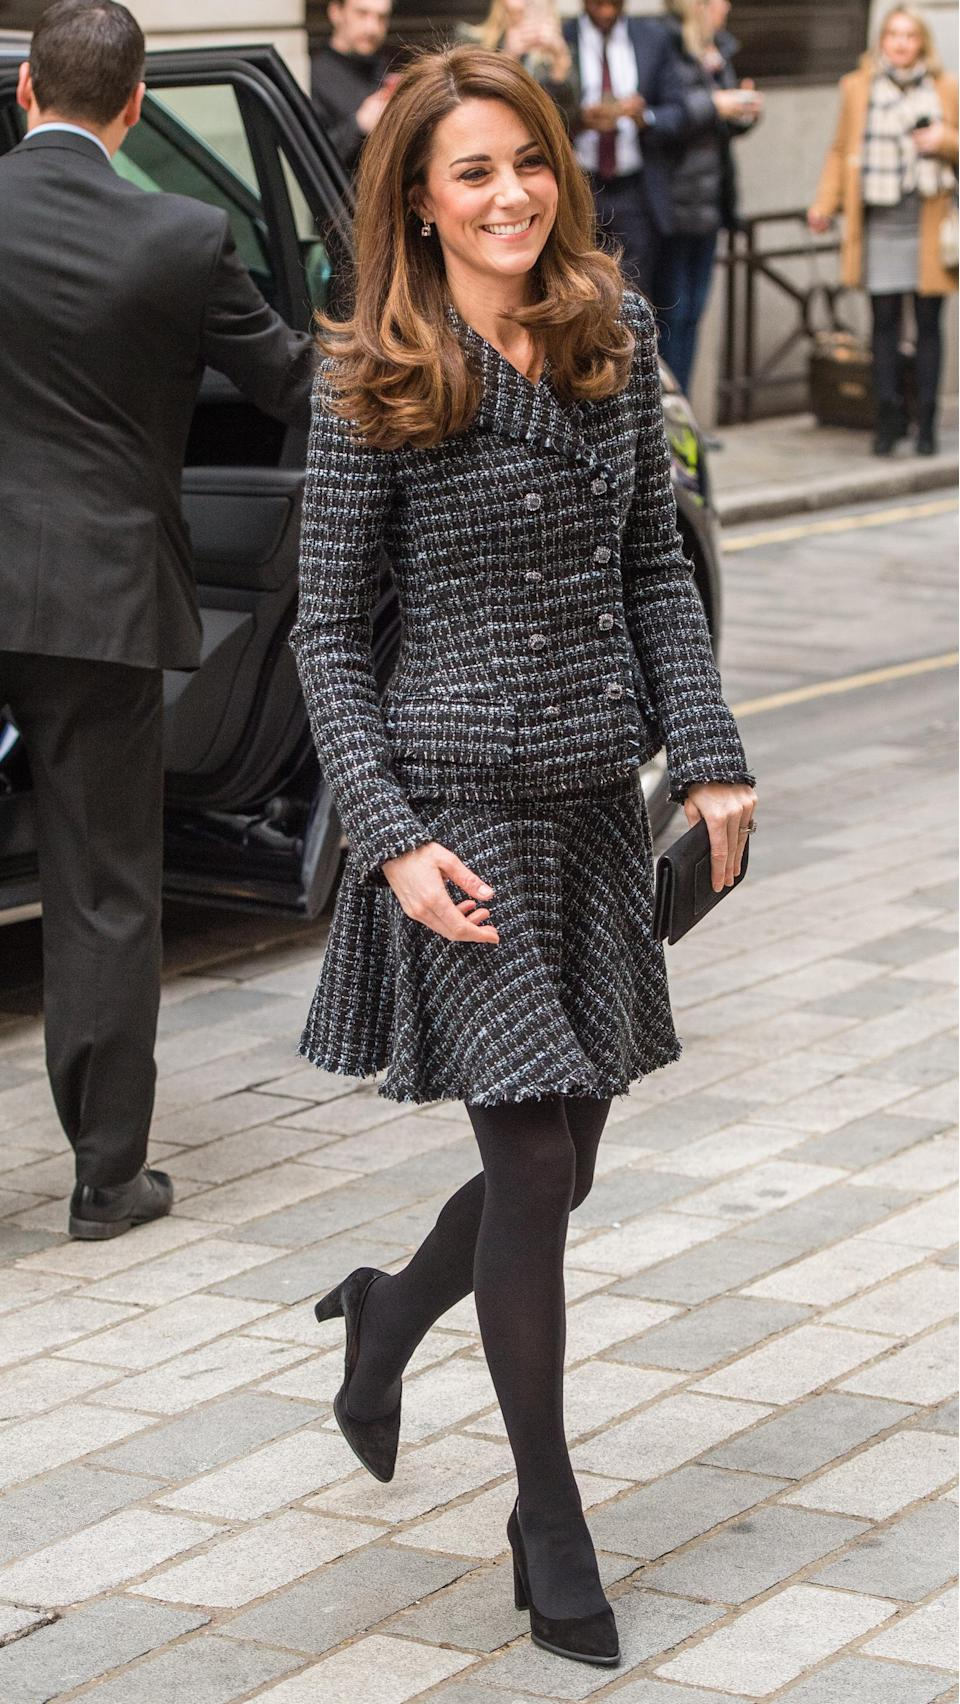 For a 'Mental Health In Education' conference in London, the Duchess of Cambridge braved the cold in a super chic tweed co-ord. To finish the look, she chose a Mulberry clutch and co-ordinating Tod's shoes. [Photo: Getty]